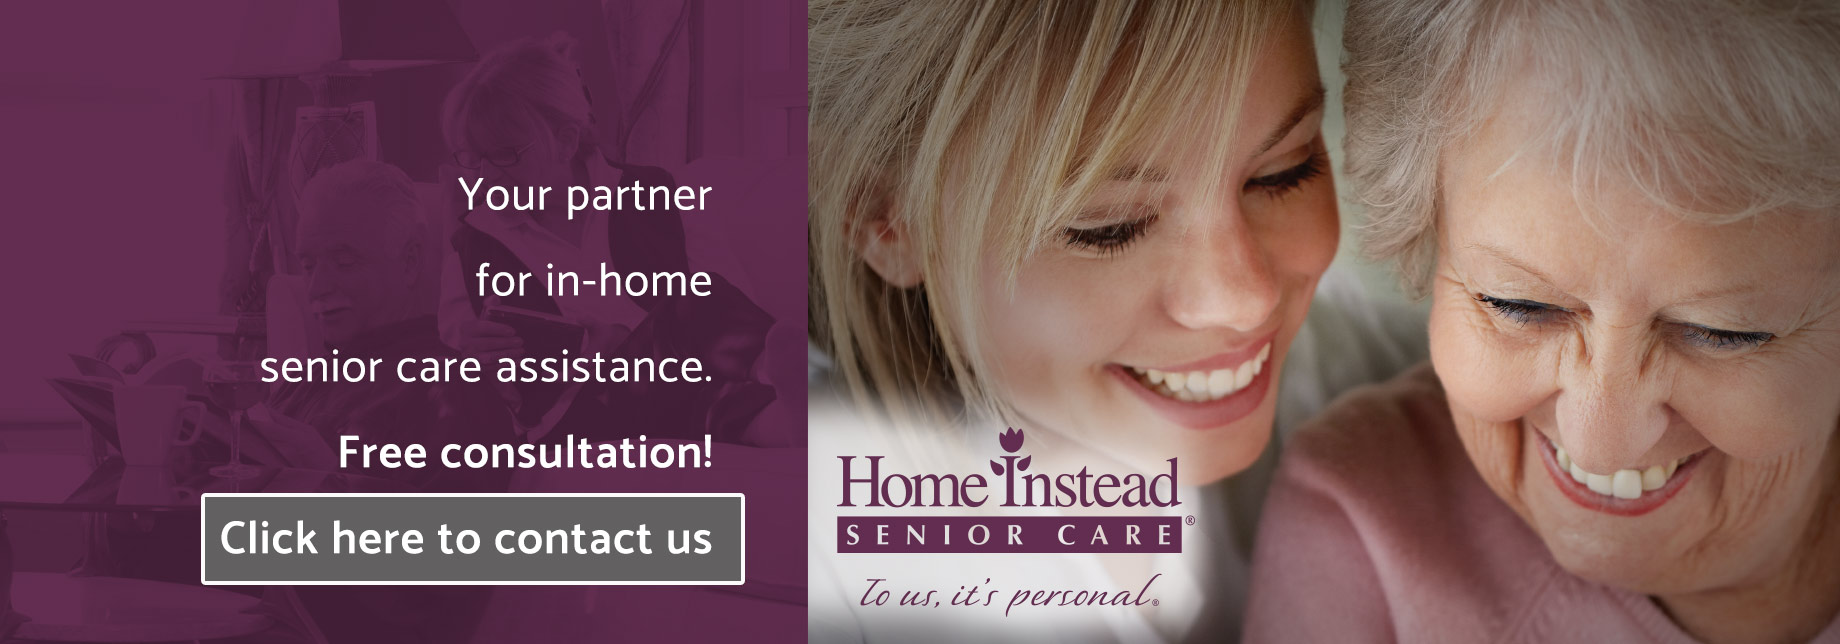 Your partner for in-home senior care assistance. Home Instead